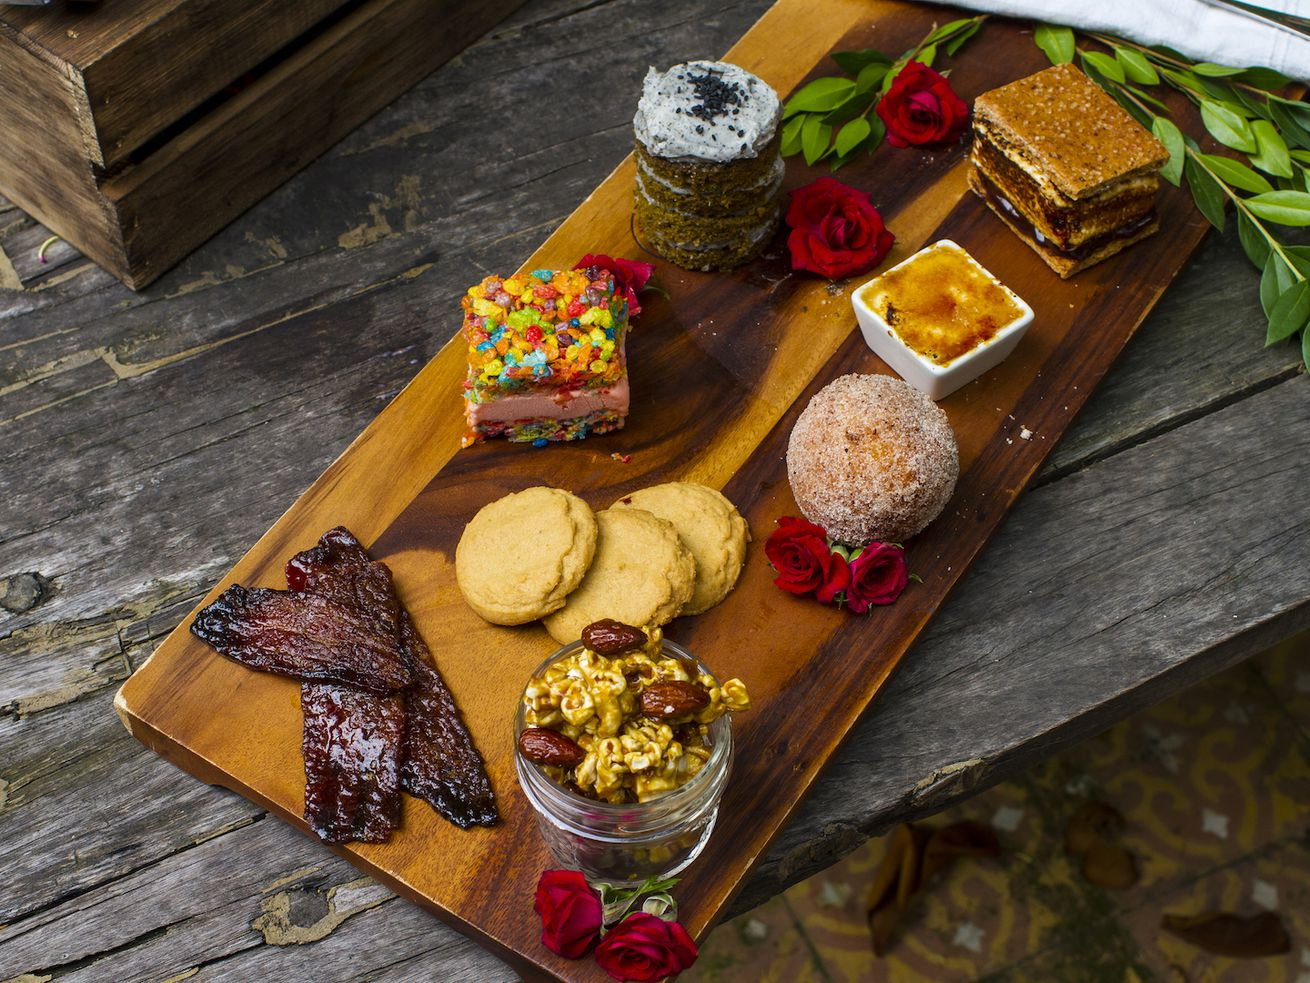 Lowell Farms Cannabis Cafe's sweet flight with candied bacon, caramel popcorn with Thai chili almonds, peanut butter cookies, sweet potato beignets, crème brûlée, homemade s'mores, and an ice cream sandwich